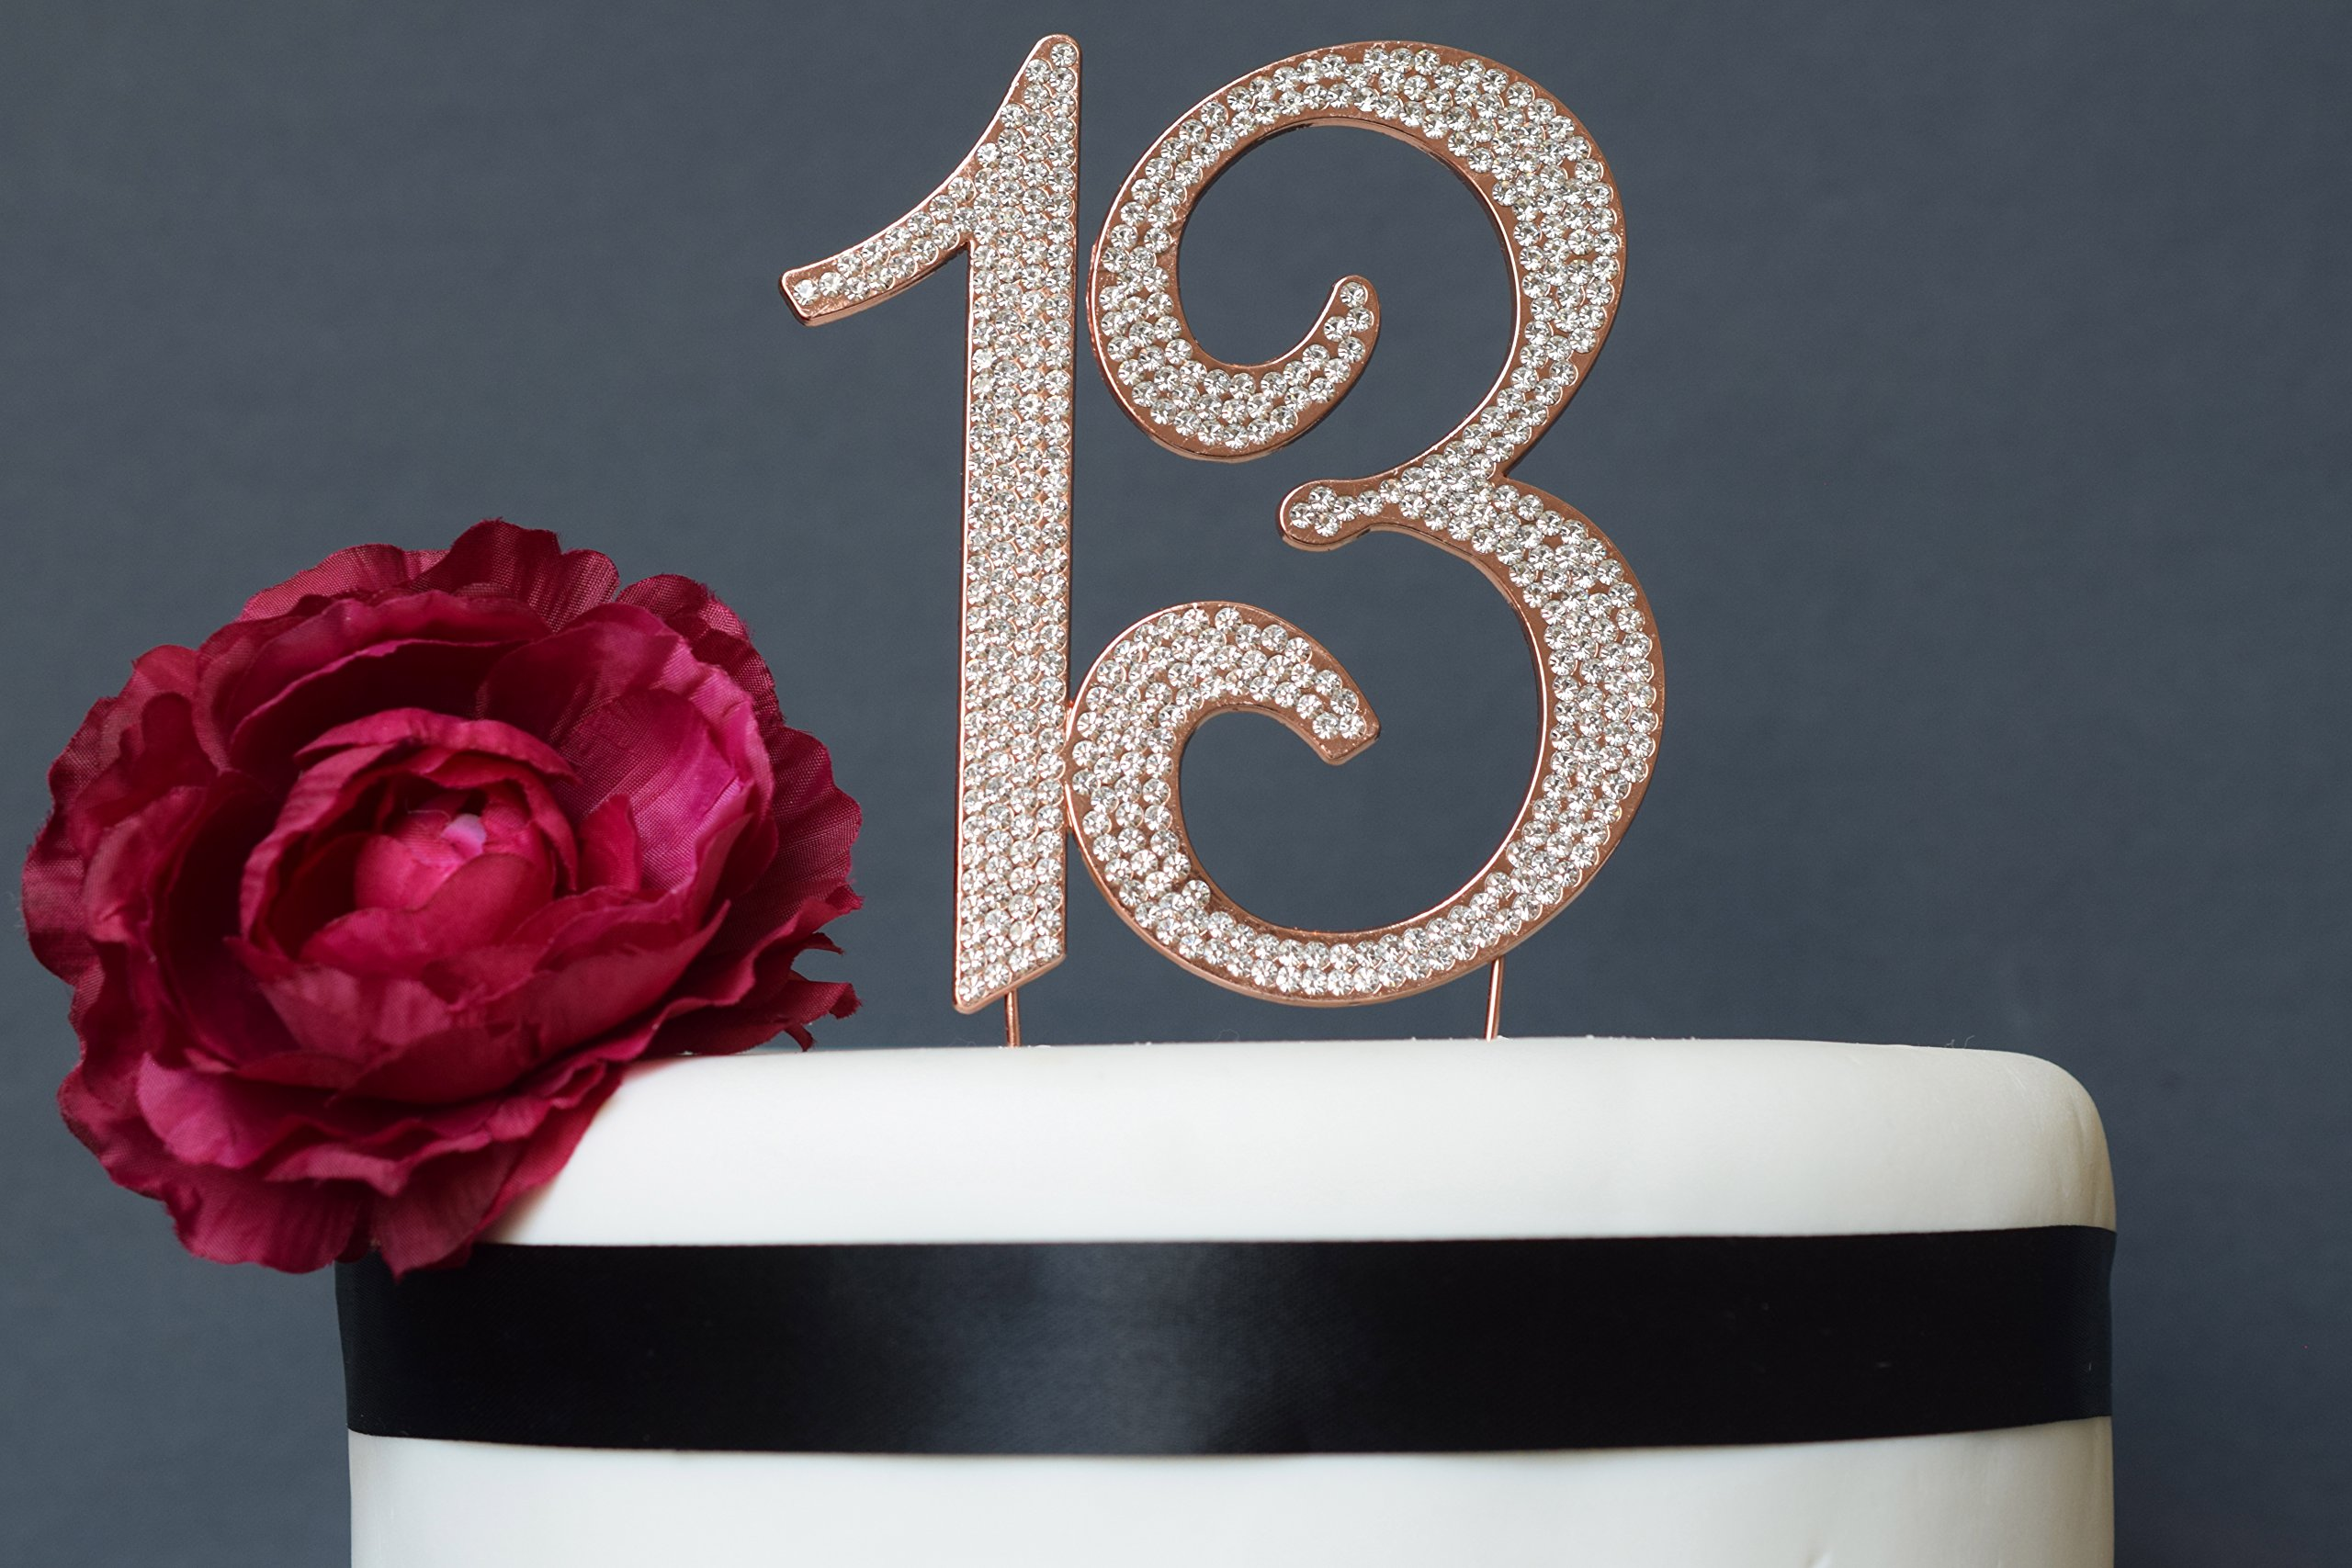 13 ROSE GOLD Cake Topper | Premium Bling Crystal Rhinestone Diamond Gems | 13th Birthday or Anniversary Party Decoration Ideas | Quality Metal Alloy | Perfect Keepsake (13 Rose) by Crystal Creations